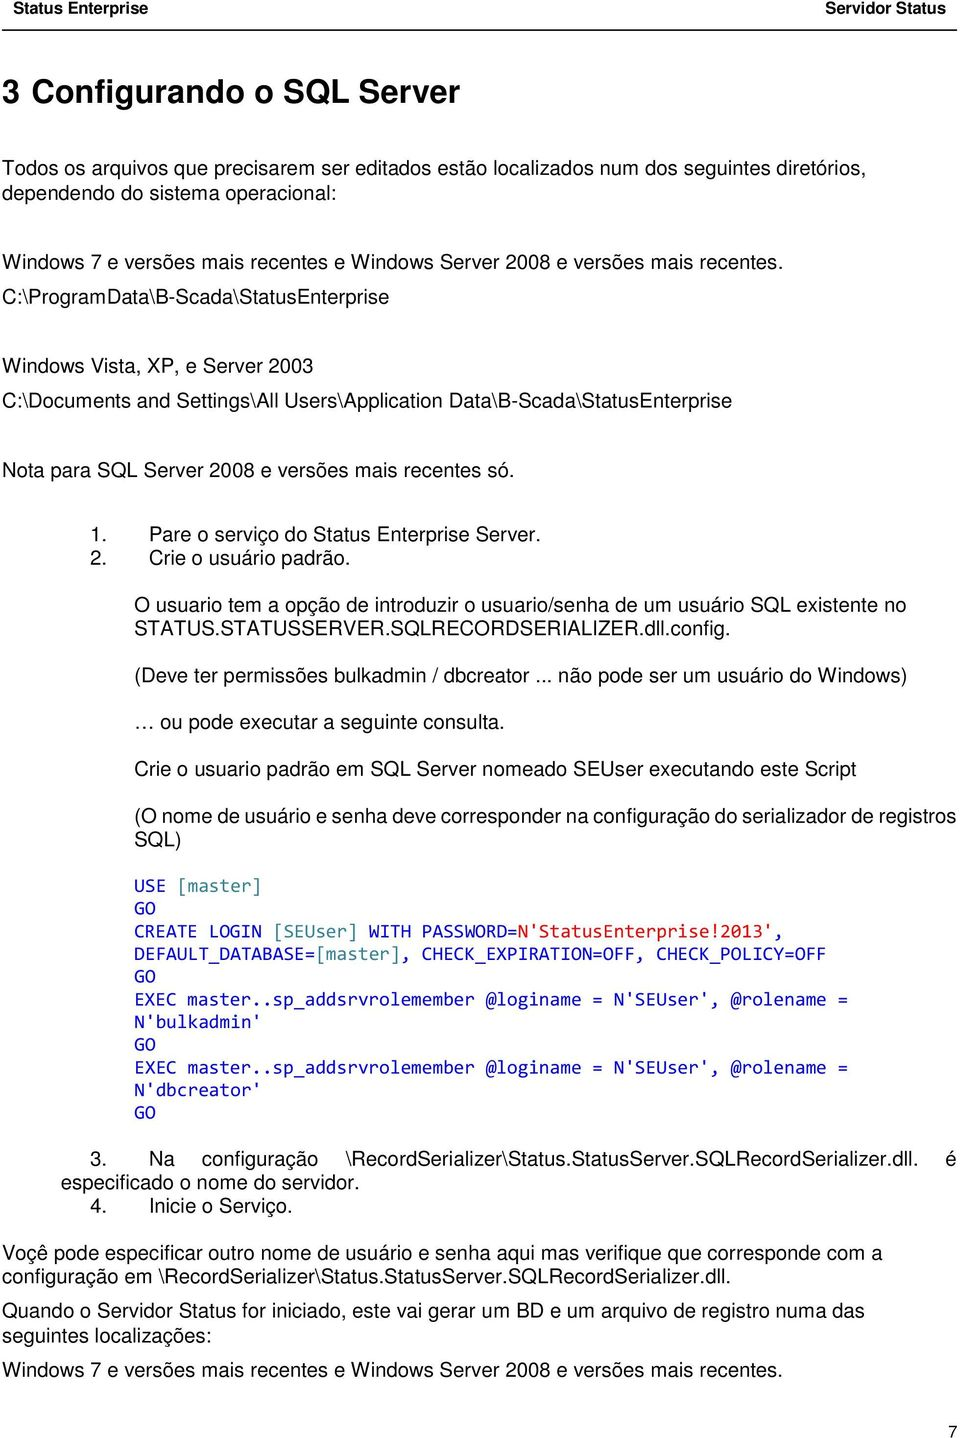 C:\ProgramData\B-Scada\StatusEnterprise Windows Vista, XP, e Server 2003 C:\Documents and Settings\All Users\Application Data\B-Scada\StatusEnterprise Nota para SQL Server 2008 e versões mais